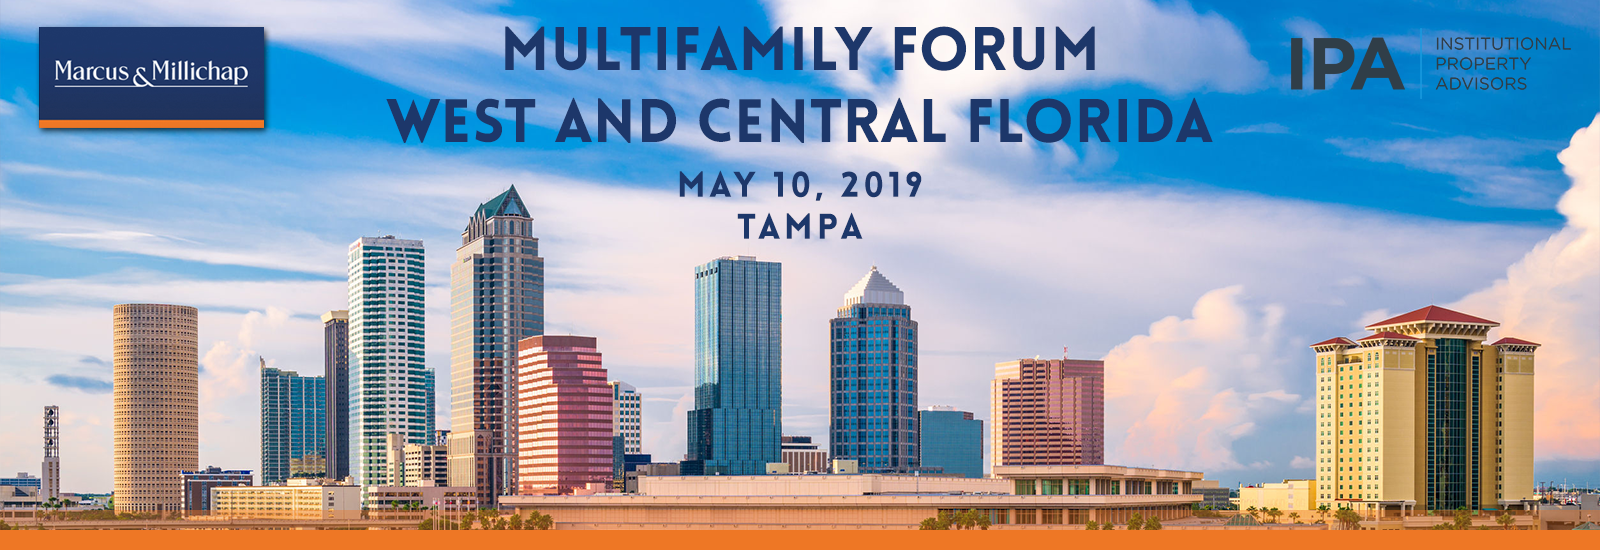 West and Central Florida Multifamily Forum   Multifamily Forum